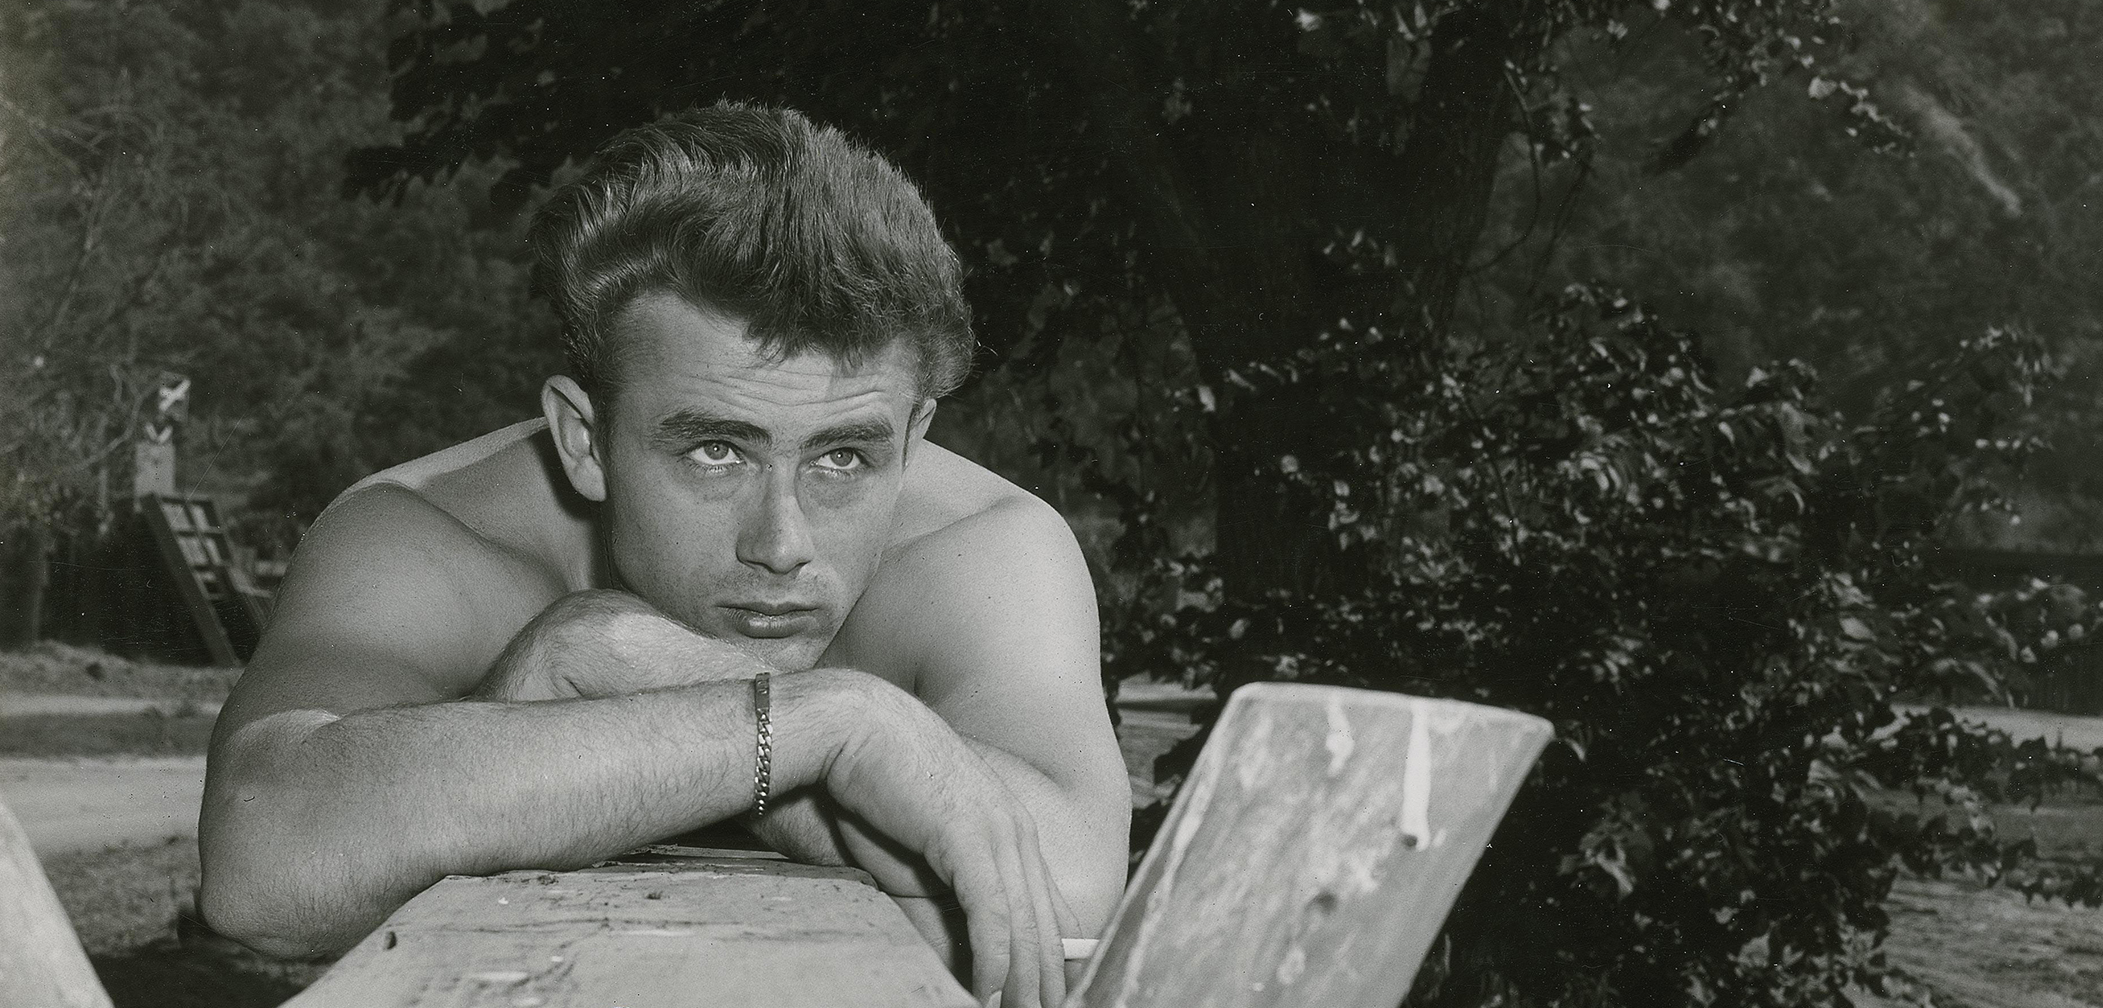 These 8 James Dean Film GIFs Are Practically Meant for Gay and Bi Men